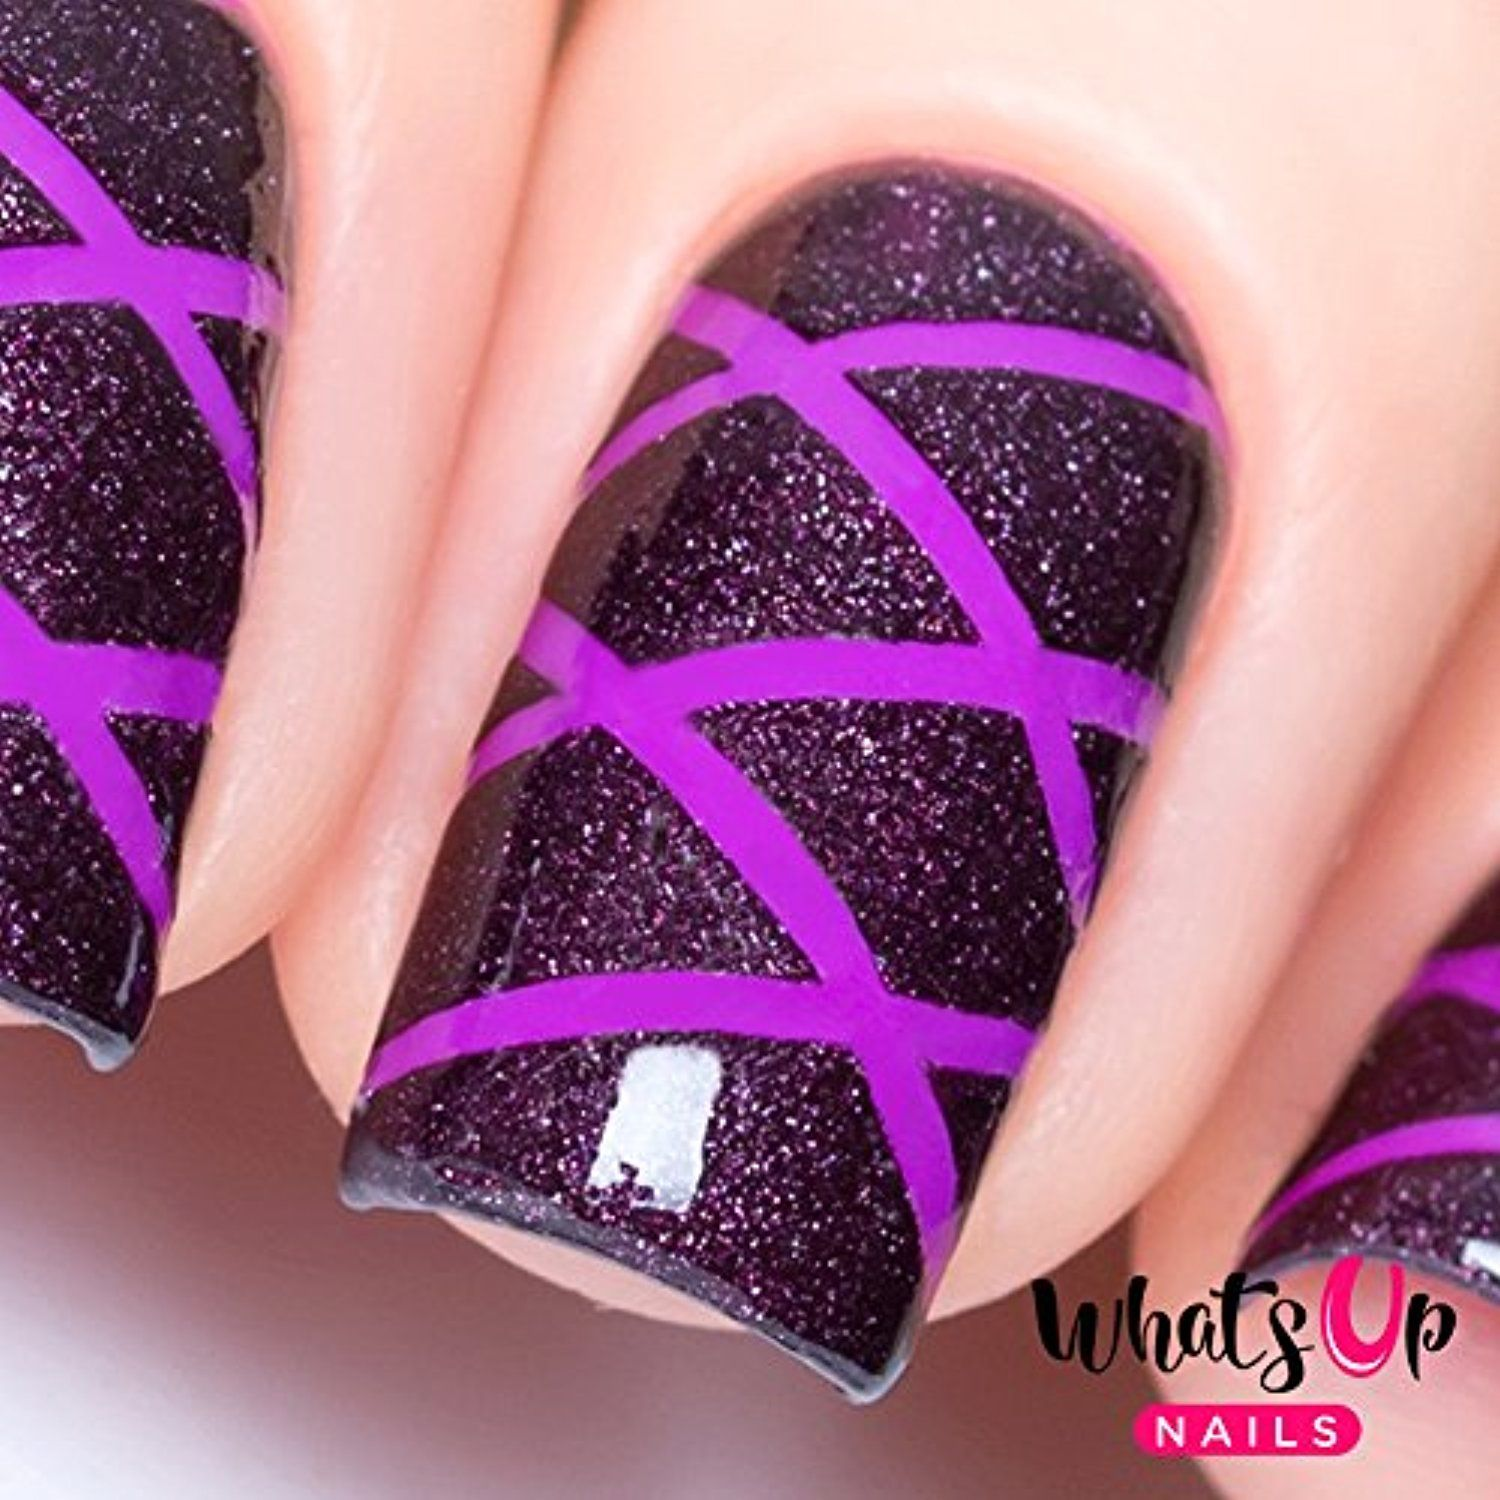 Whats Up Nails - Skinny Straight Tape Nail Stencils Stickers Vinyls ...